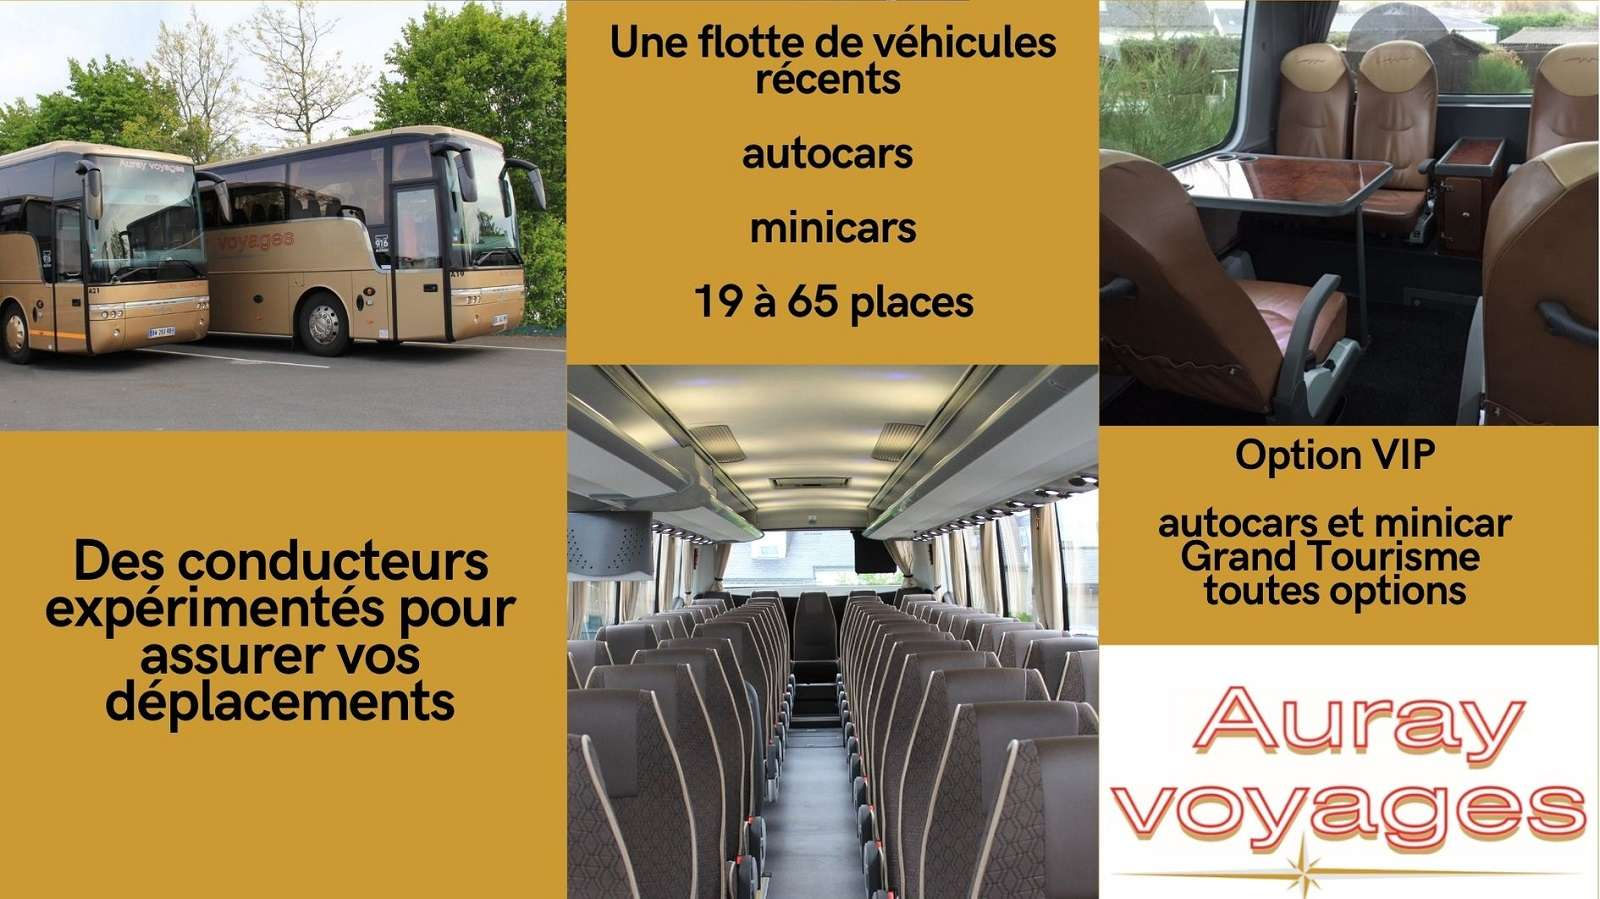 4_Transports Auray Voyages